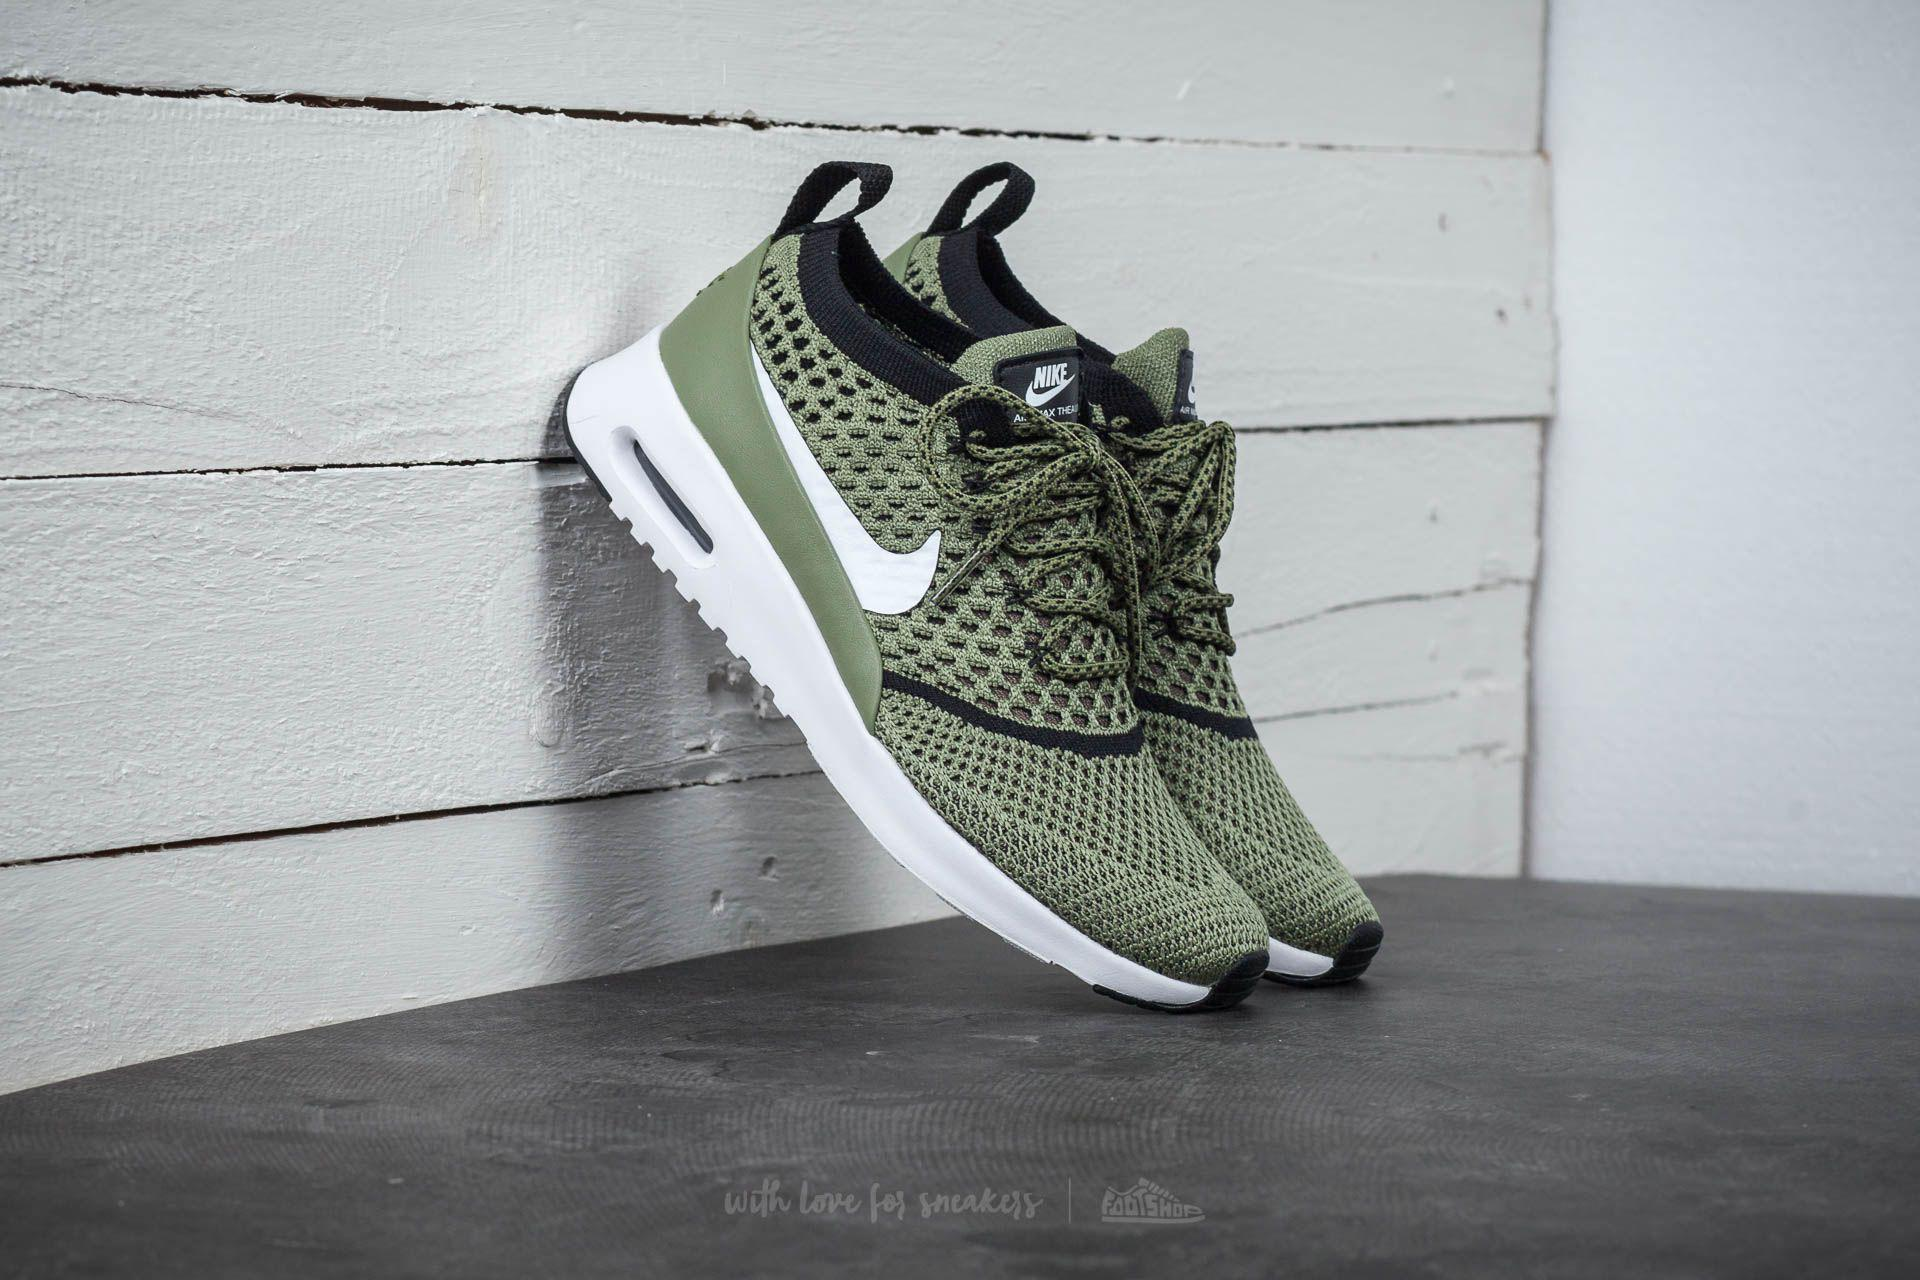 46500934d3 Nike Wmns Air Max Thea Ultra Flyknit Palm Green/ White-black in ...